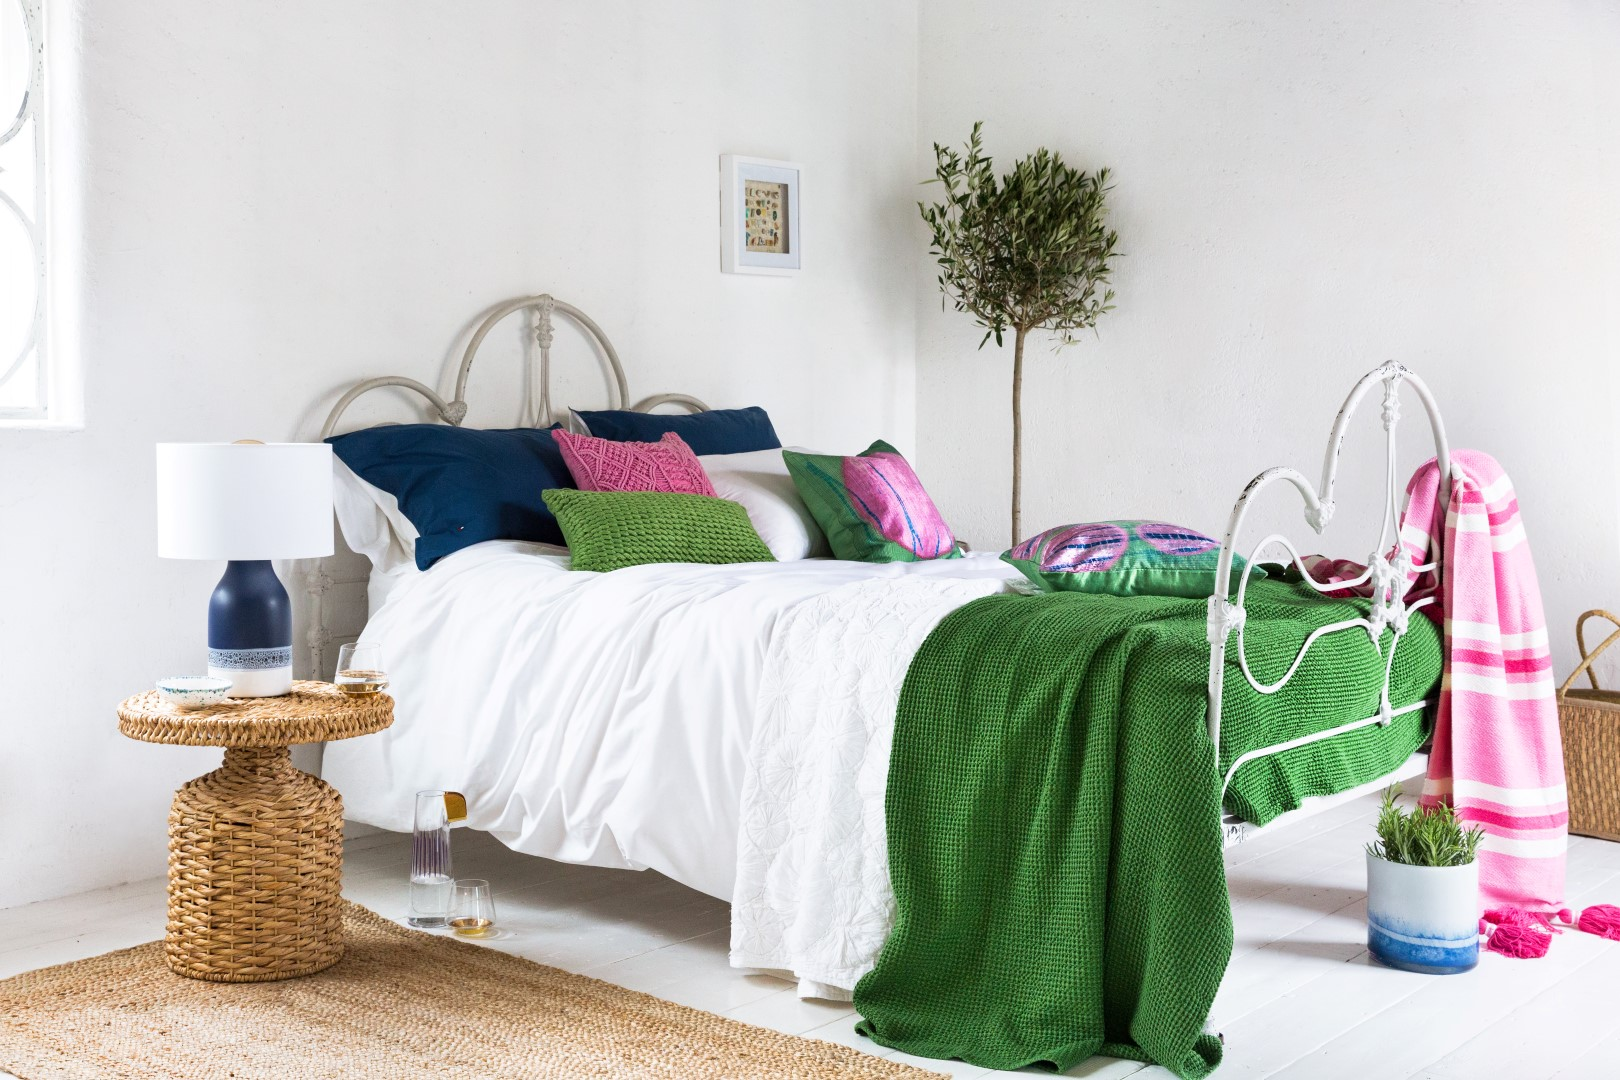 White bedroom with green throw and blue and pink cushions